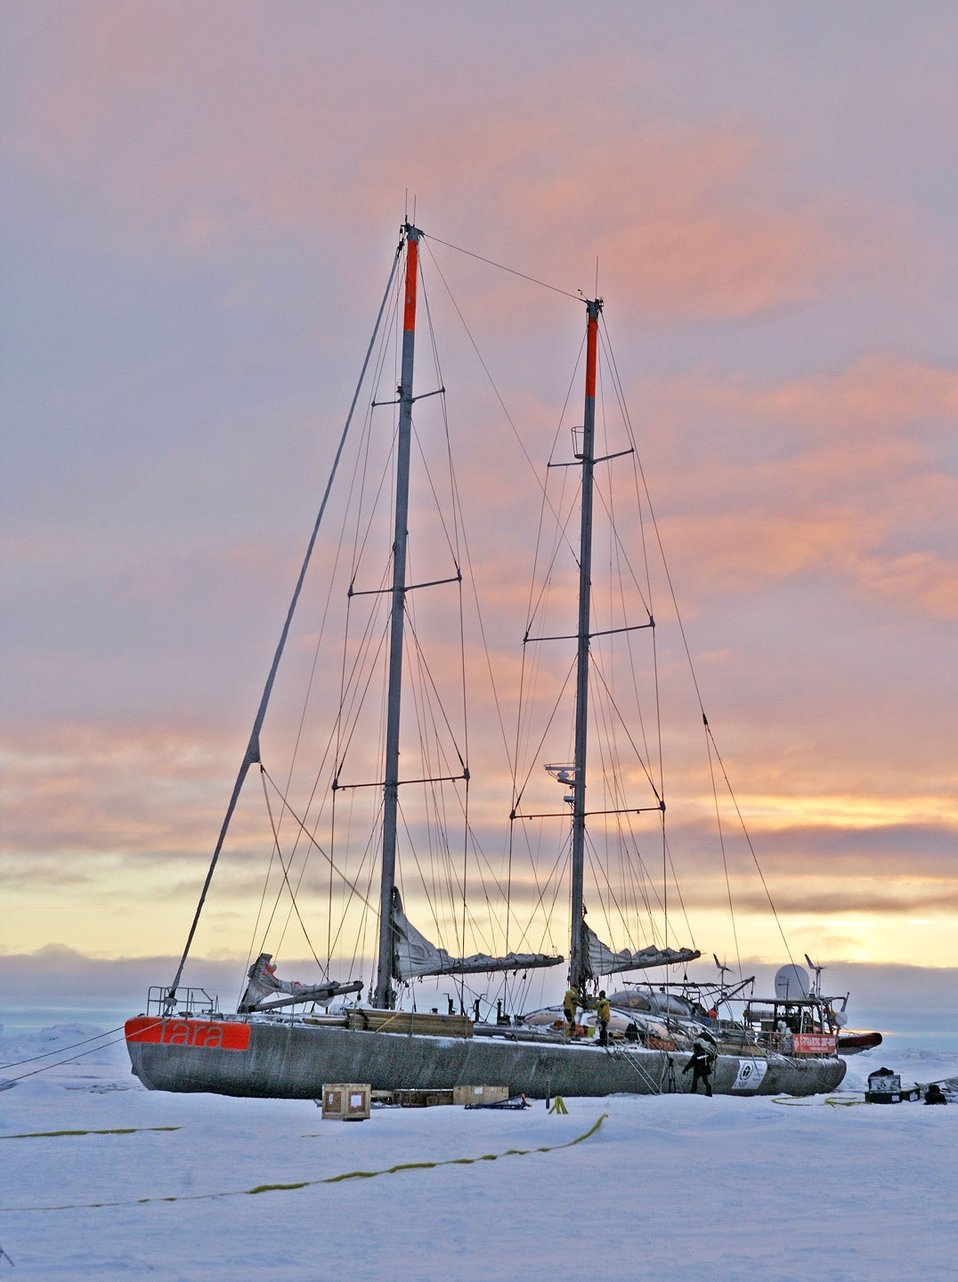 The French sailing vessel TARA which will intentionally be frozen in the ice for two years in order to conduct Arctic climate and oceanographic studies.  See: http://www.naturalsciences.org/education/arctic/